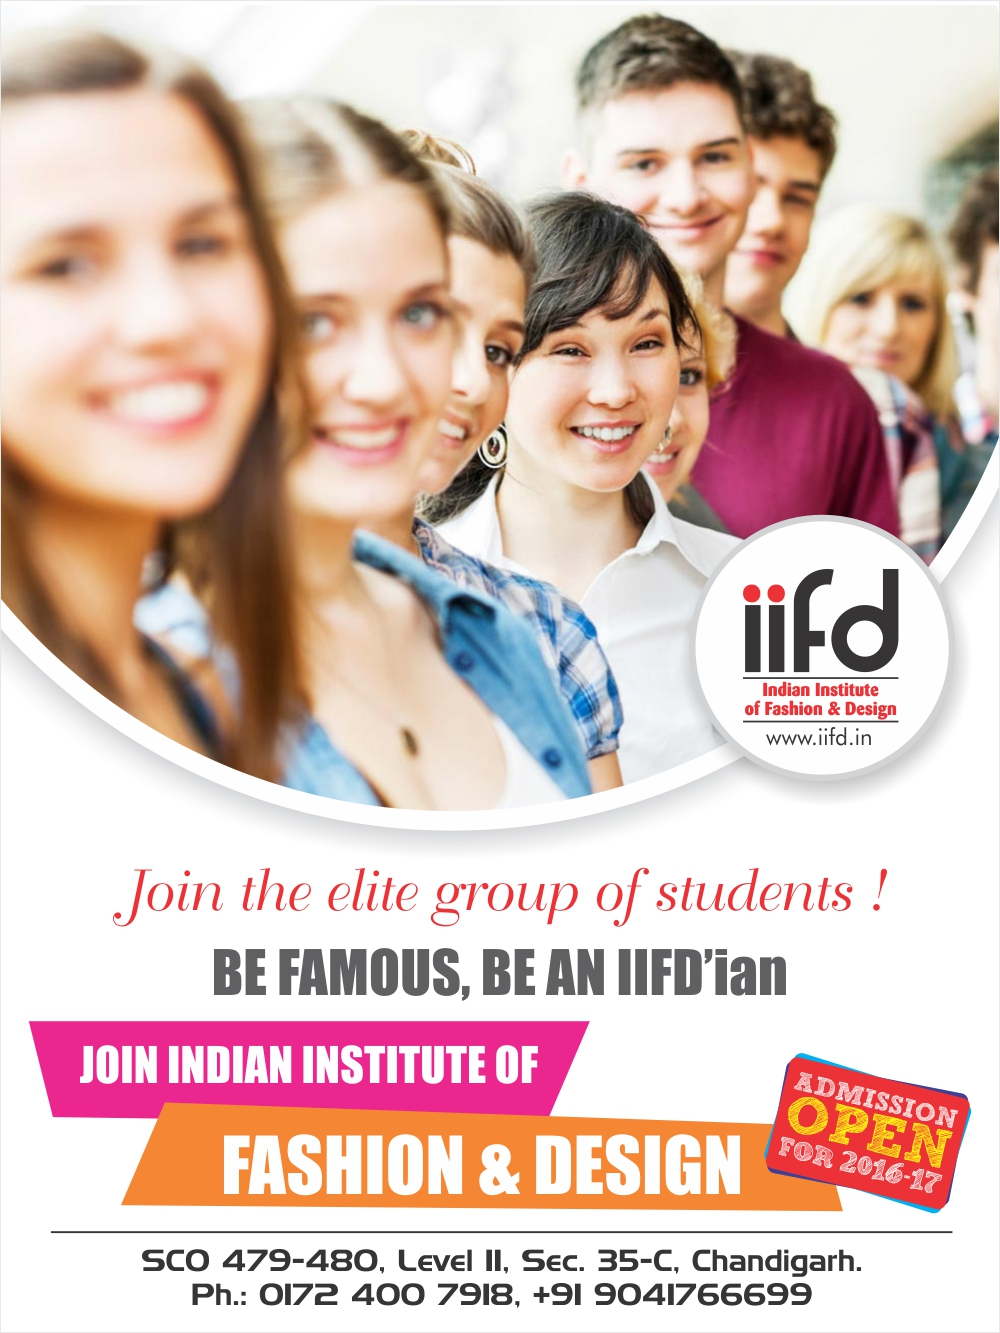 Iifd Best Fashion Designing Courses Institute In Chandigarh Punjab Intensity In Fashion Industry